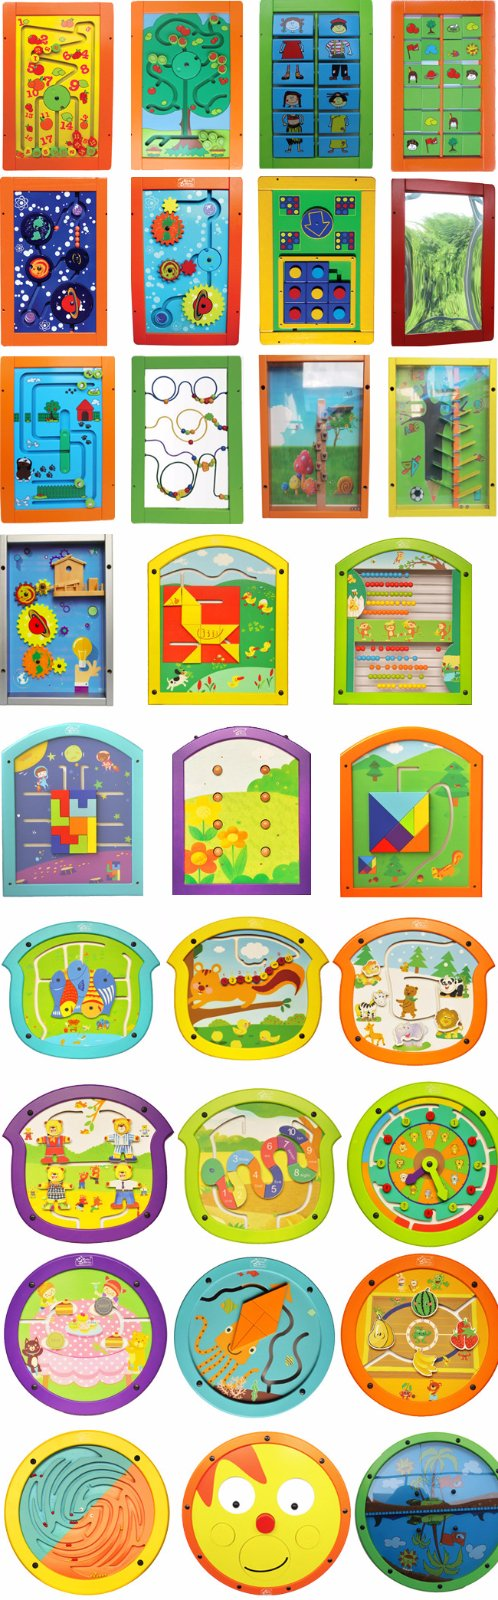 Educational Wooden Pay Toys on Wall